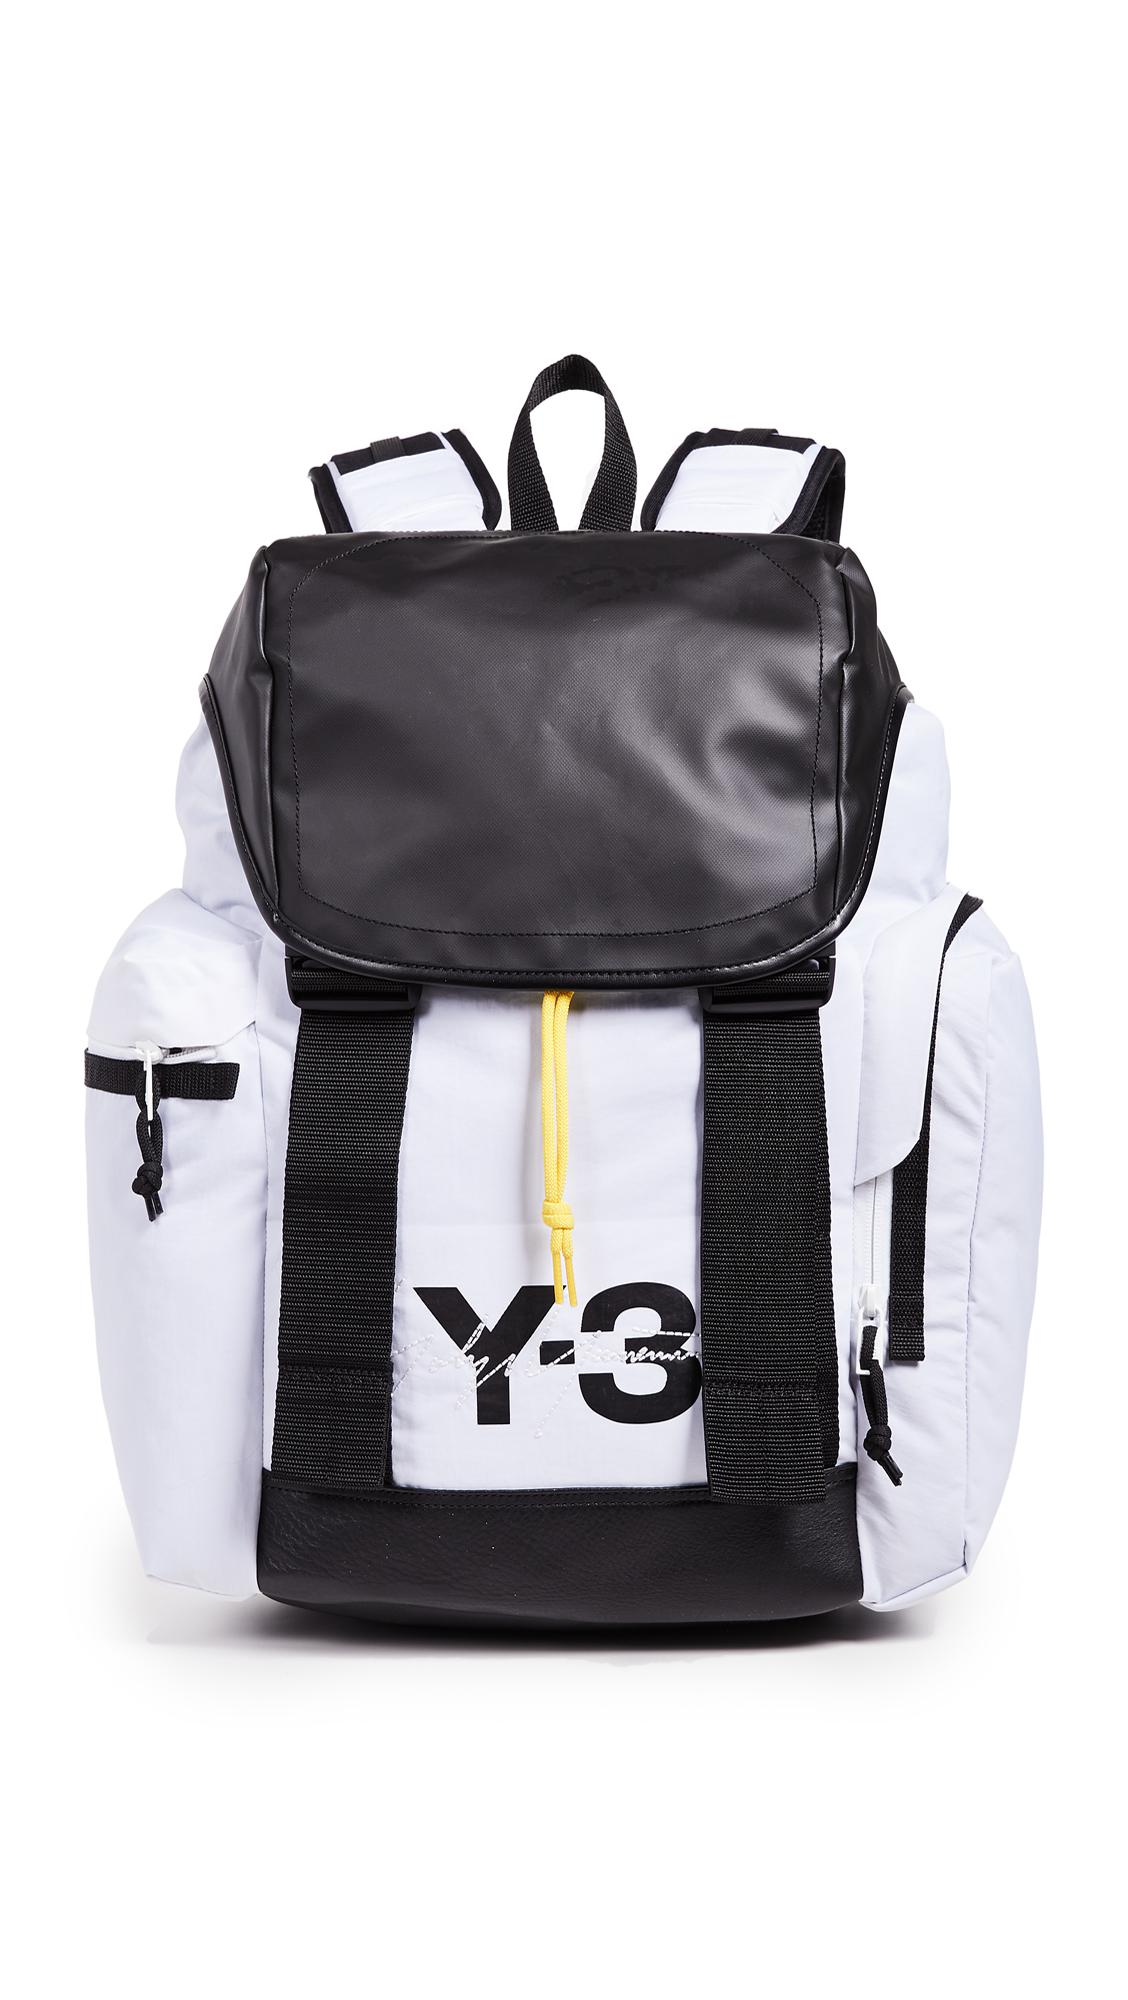 2ae39ba0695d Y-3 Mobility Backpack in Black for Men - Lyst